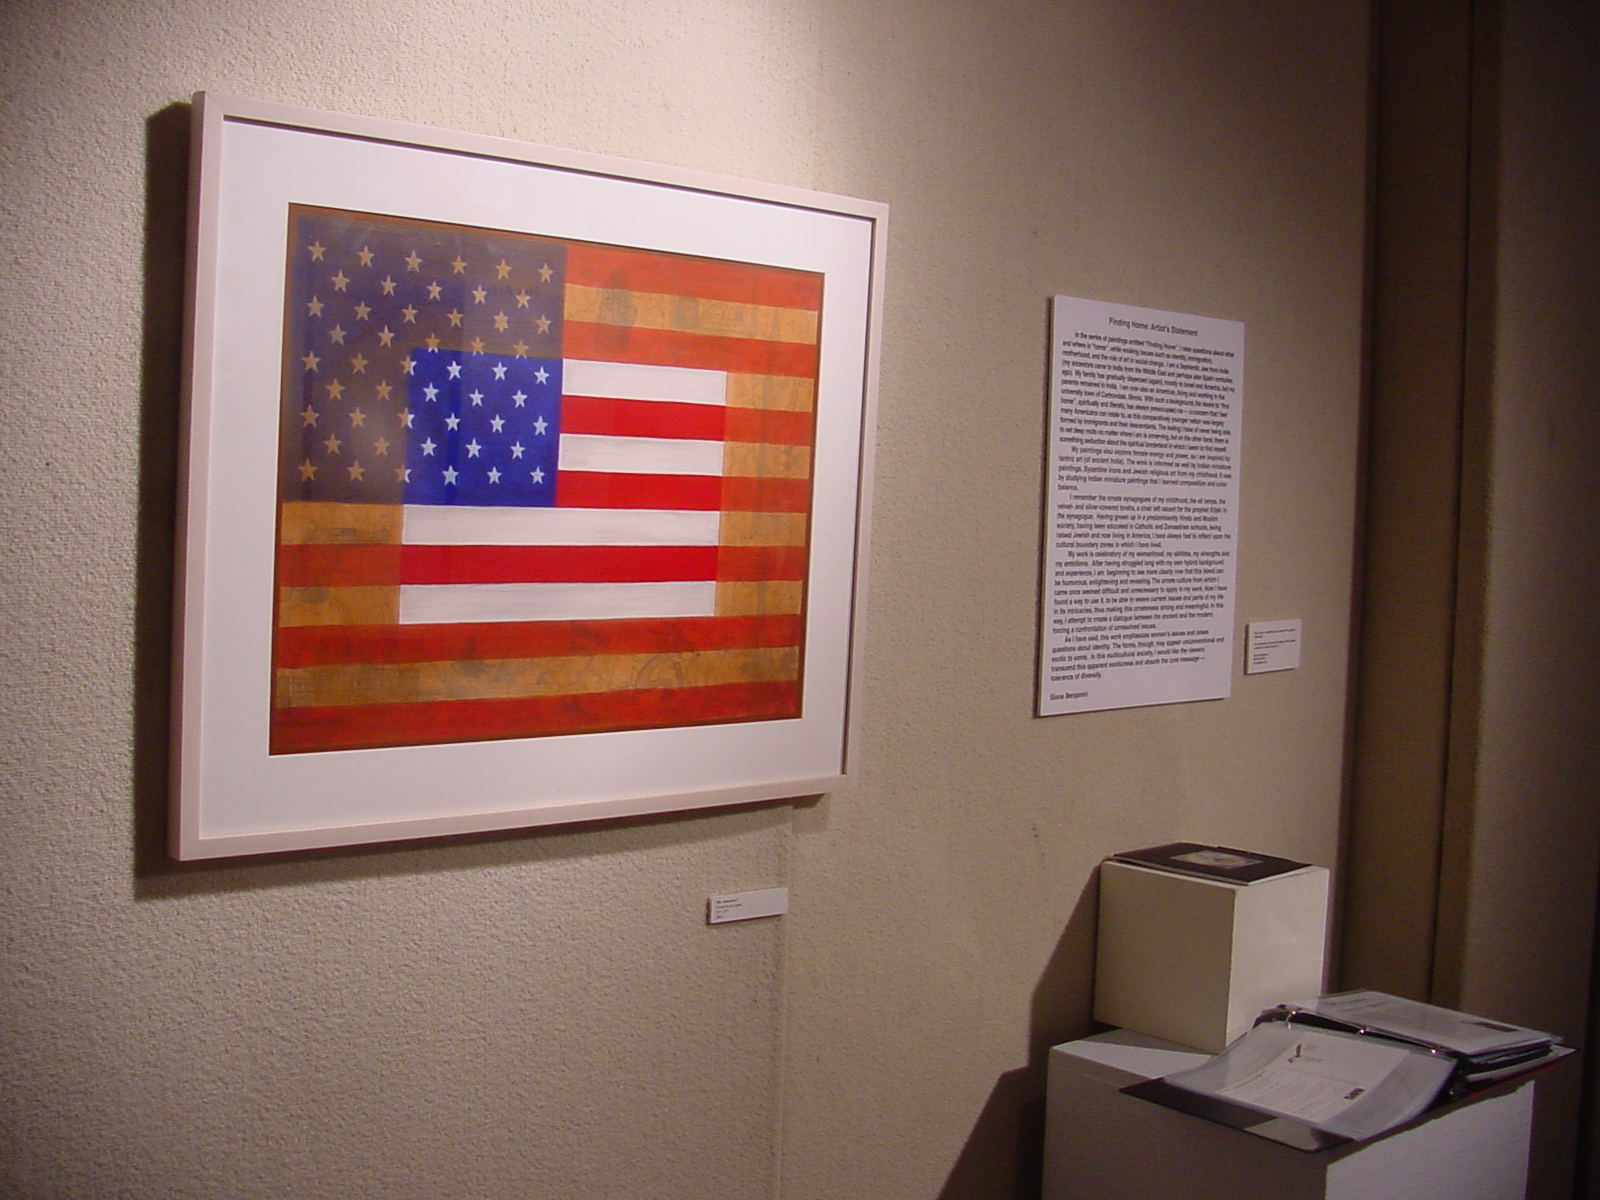 "My America, 28"" x 34 Flag painting, Mixed Media 2001"